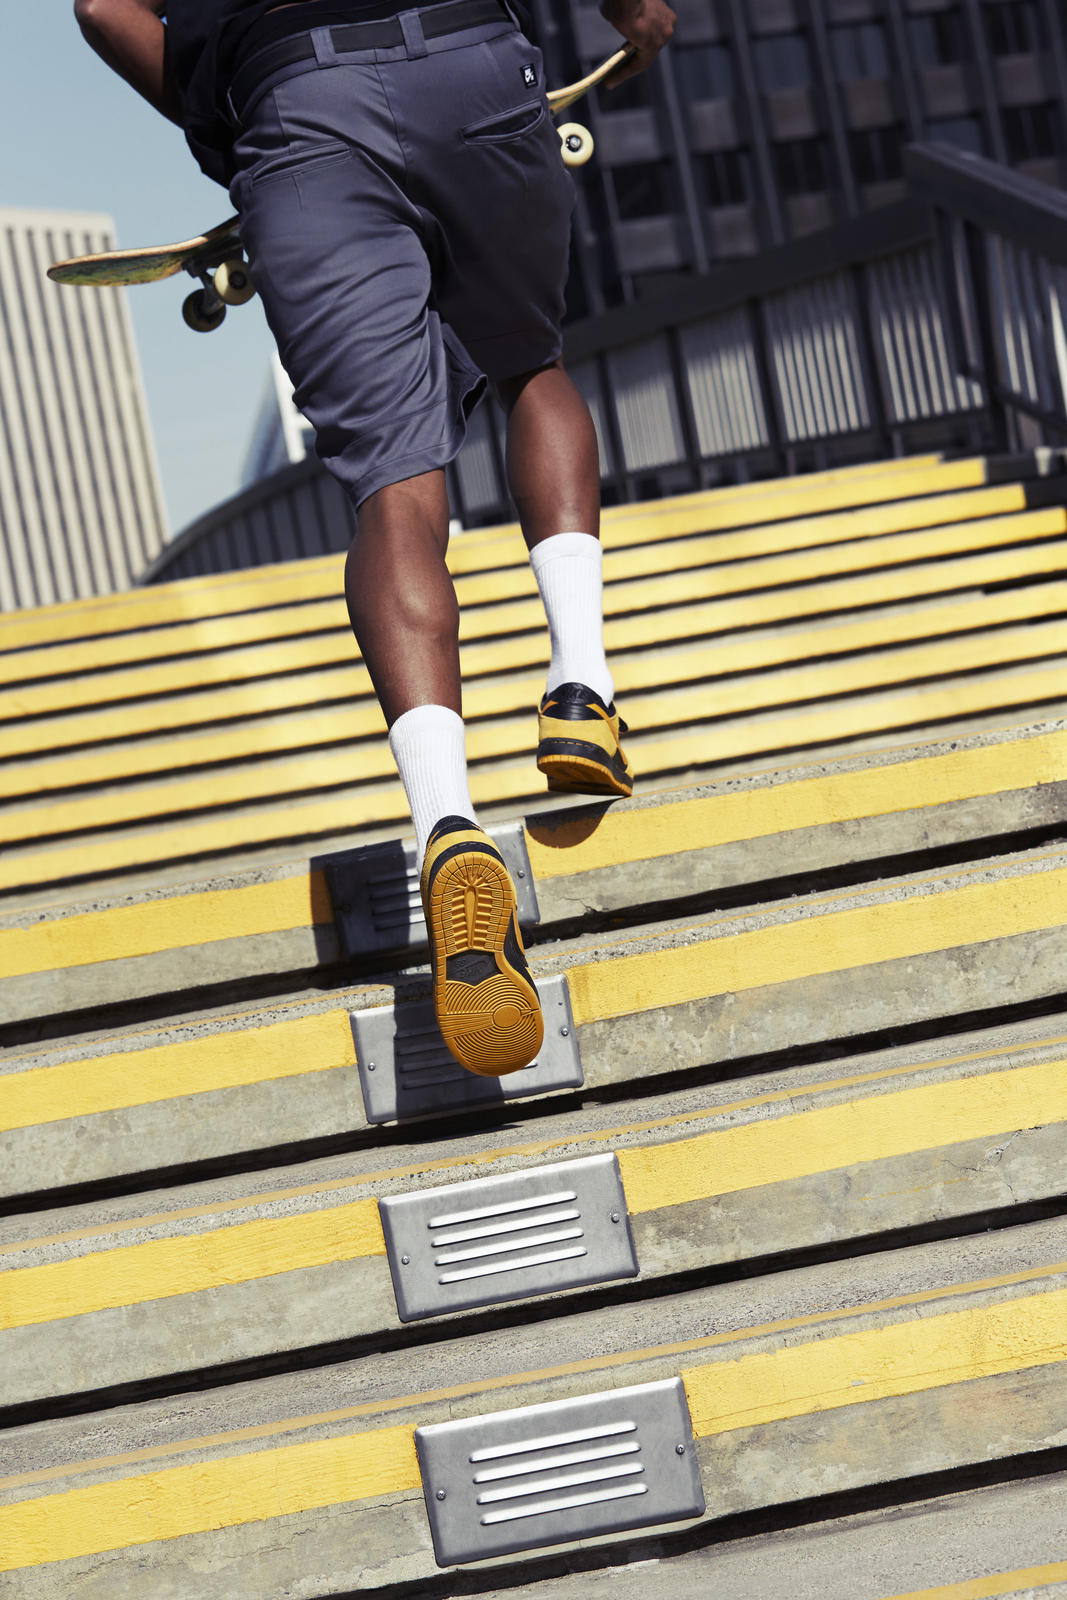 Above The Board: The Dunk Low Pro SB